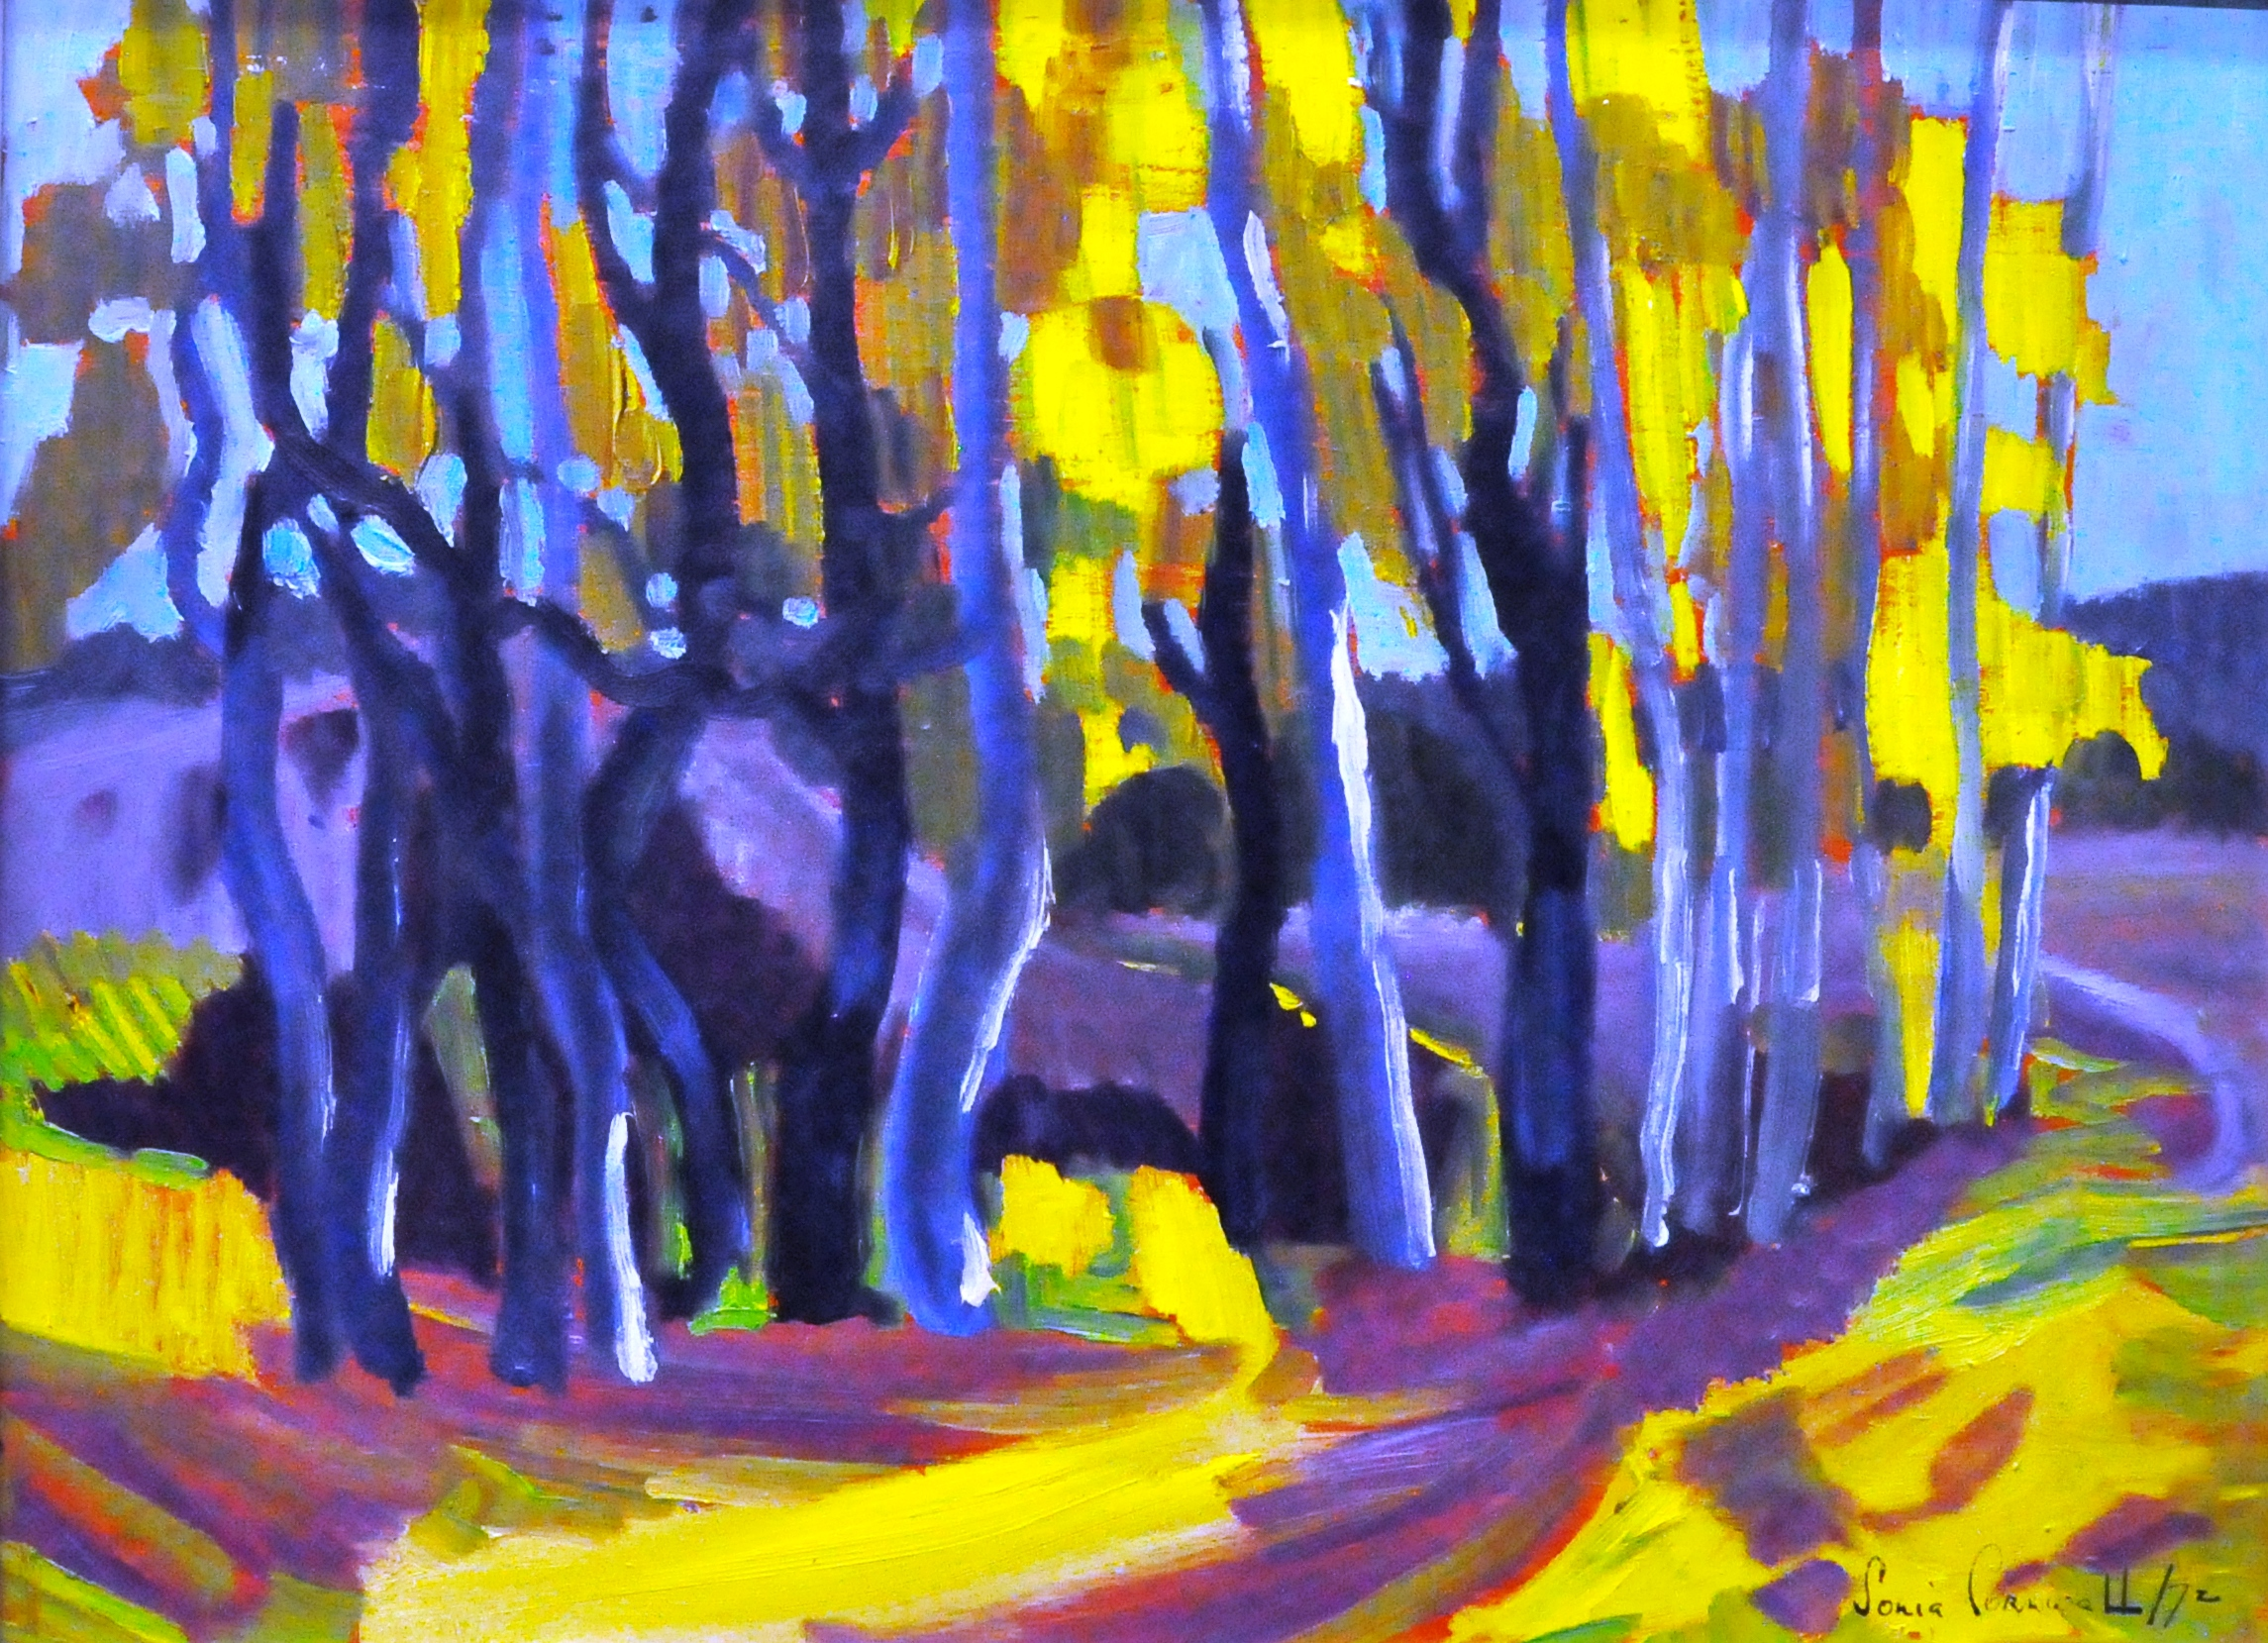 "Fall Finery,  1972, Sonia Cornwall, acrylic?, 11.5"" x 15.5"", 2008.06.01"